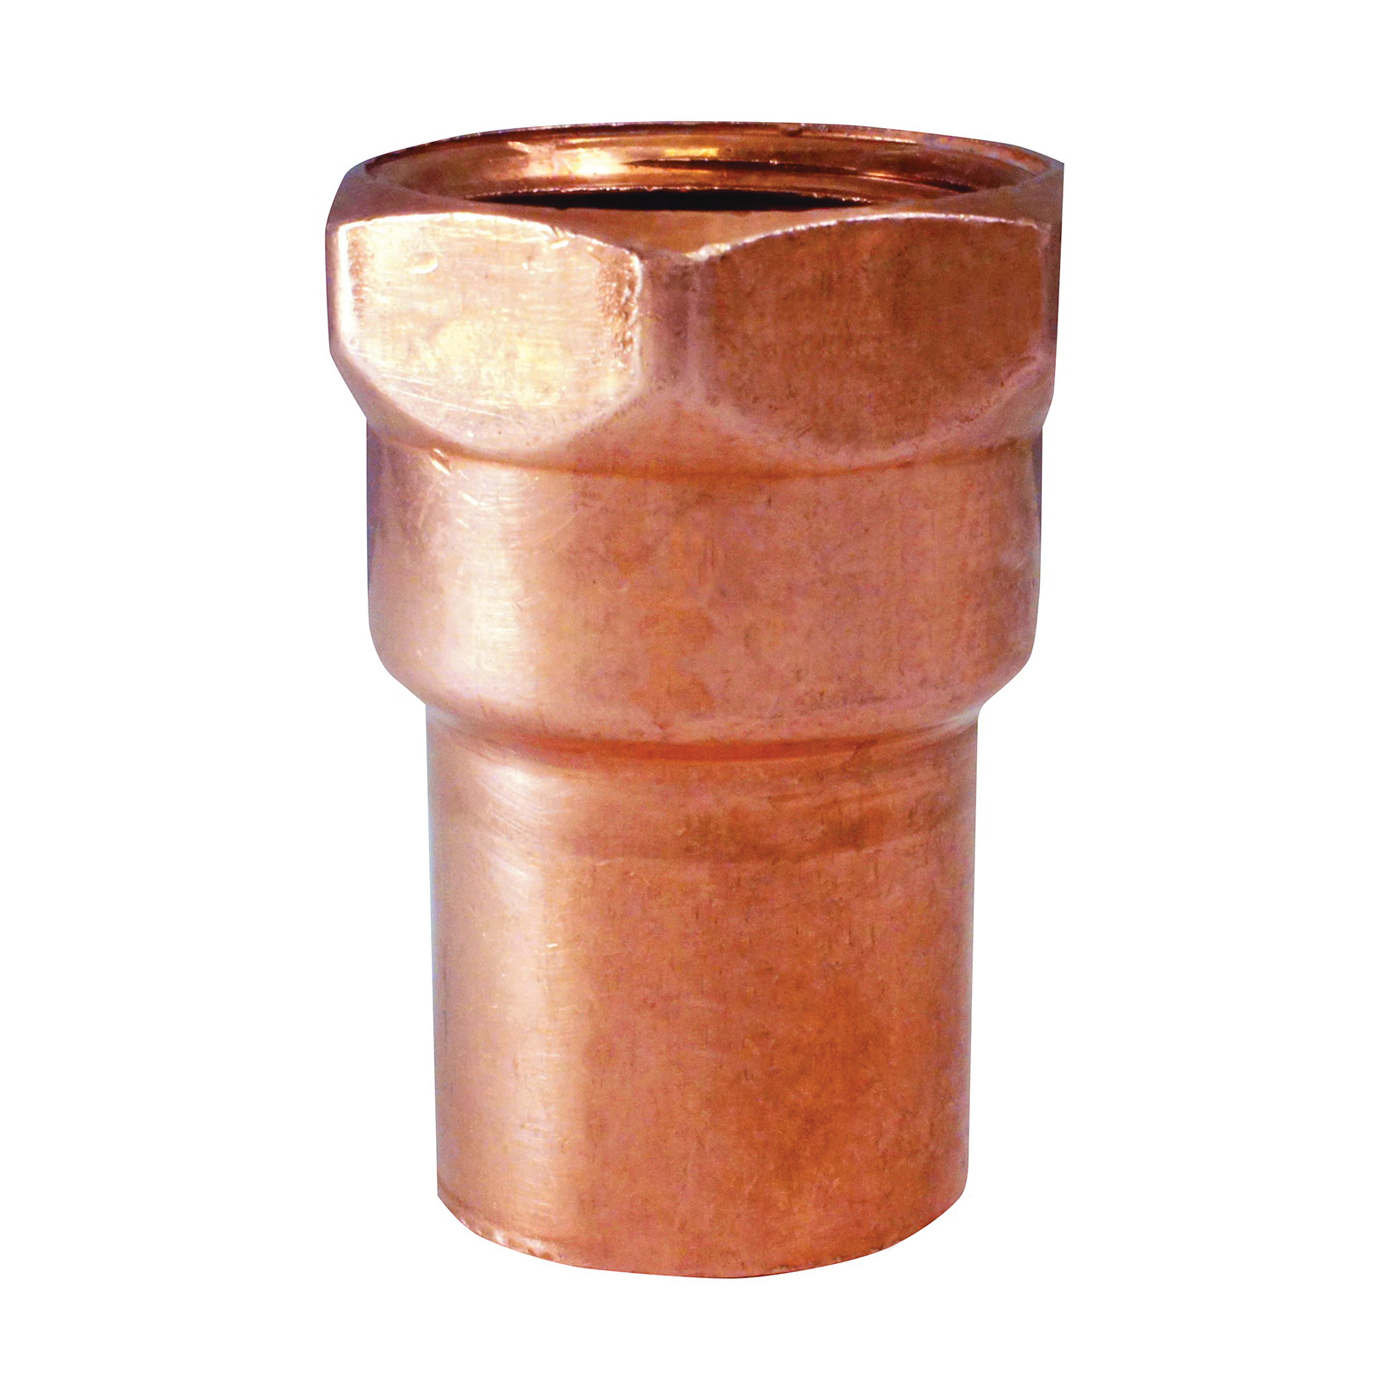 Picture of EPC 103 Series 30130 Pipe Adapter, 1/2 in, Sweat x FNPT, Copper